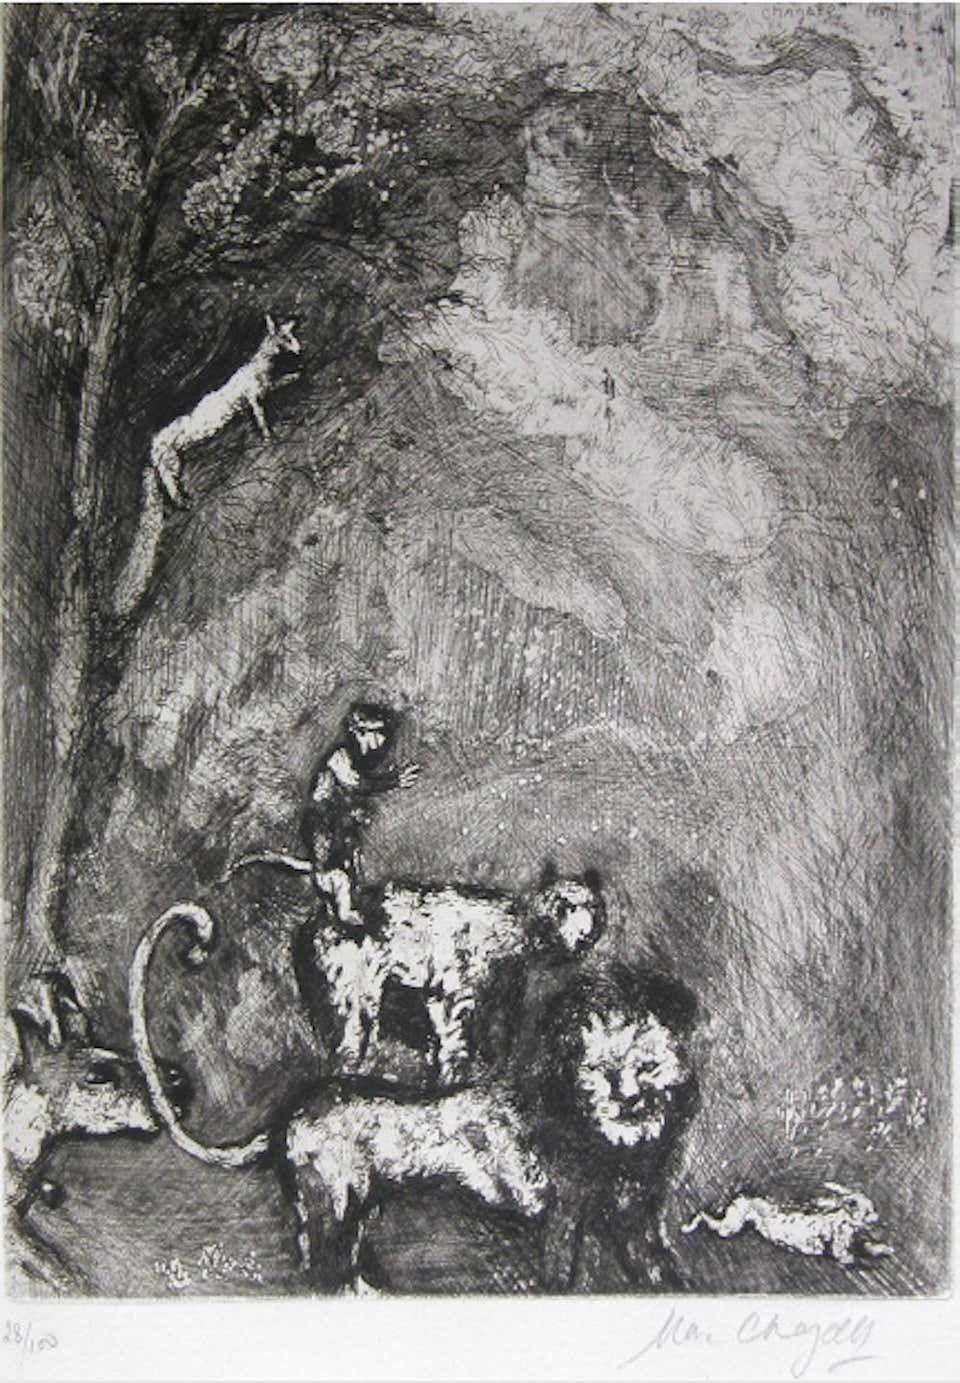 """<p><strong>Marc Chagall</strong></p><p>1stdibs.com</p><p><strong>$3110.50</strong></p><p><a href=""""https://go.redirectingat.com?id=74968X1596630&url=https%3A%2F%2Fwww.1stdibs.com%2Fart%2Fmore-art%2Fmarc-chagall-le-lion-sen-allant-en-guerre-original-etching-marc-chagall-1927-30%2Fid-a_4184541%2F&sref=https%3A%2F%2Fwww.townandcountrymag.com%2Fstyle%2Fcollectibles%2Fg34288980%2Fwhat-to-buy-1stdibs-fall-2020-sale%2F"""" rel=""""nofollow noopener"""" target=""""_blank"""" data-ylk=""""slk:Shop Now"""" class=""""link rapid-noclick-resp"""">Shop Now</a></p><p>Etchings and lithographs are one way to collect an artist you love without paying the premium that comes with paintings. </p>"""